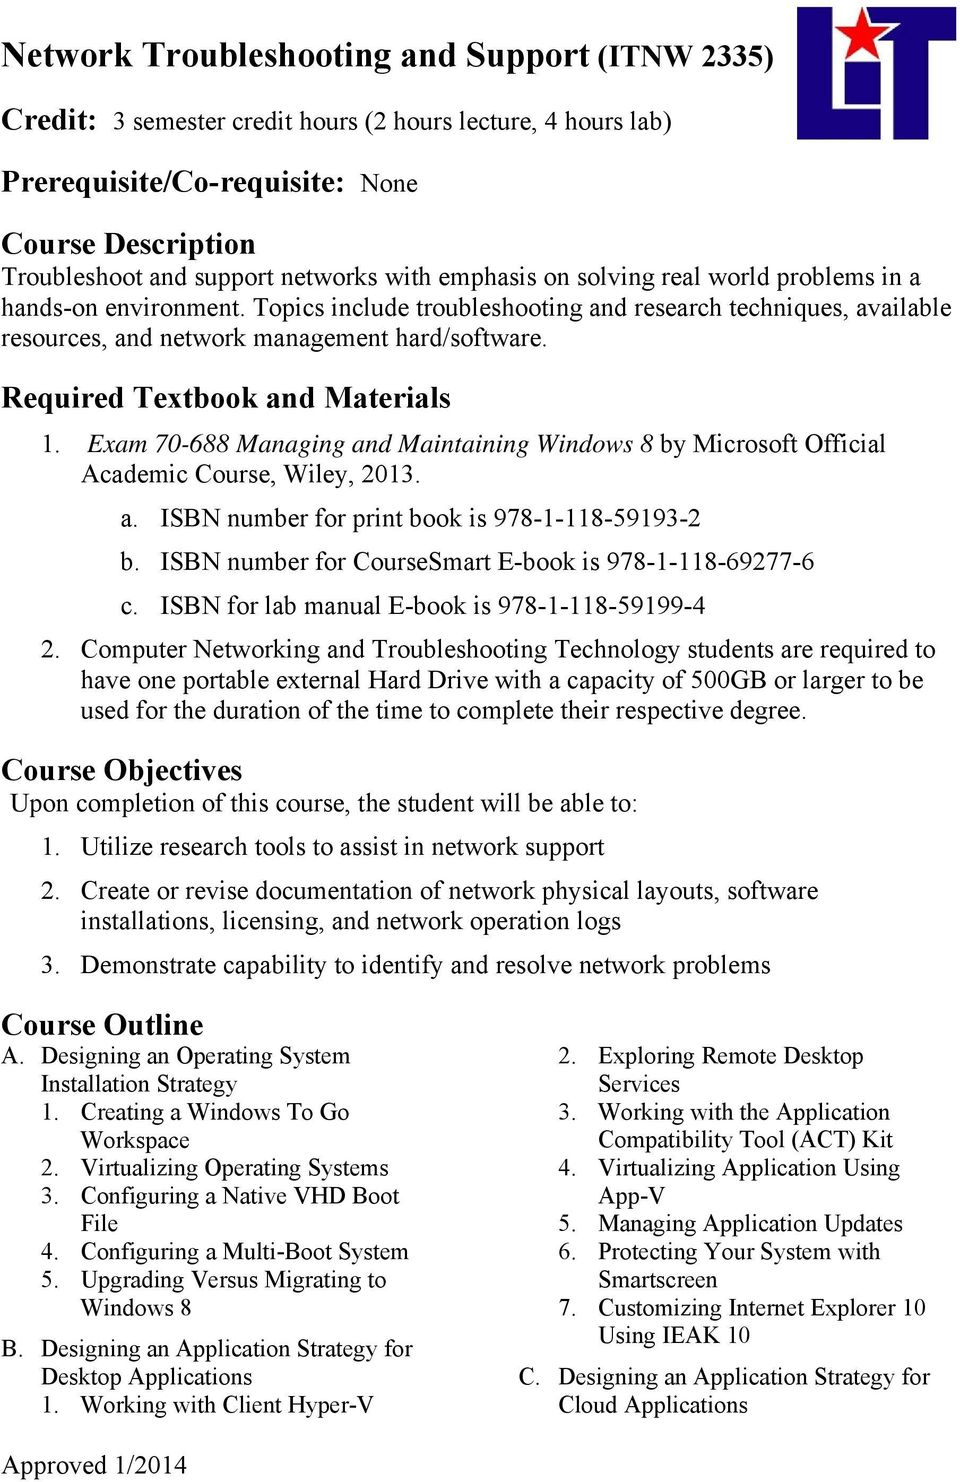 Required Textbook and Materials 1. Exam 70-688 Managing and Maintaining Windows 8 by Microsoft Official Academic Course, Wiley, 2013. a. ISBN number for print book is 978-1-118-59193-2 b.